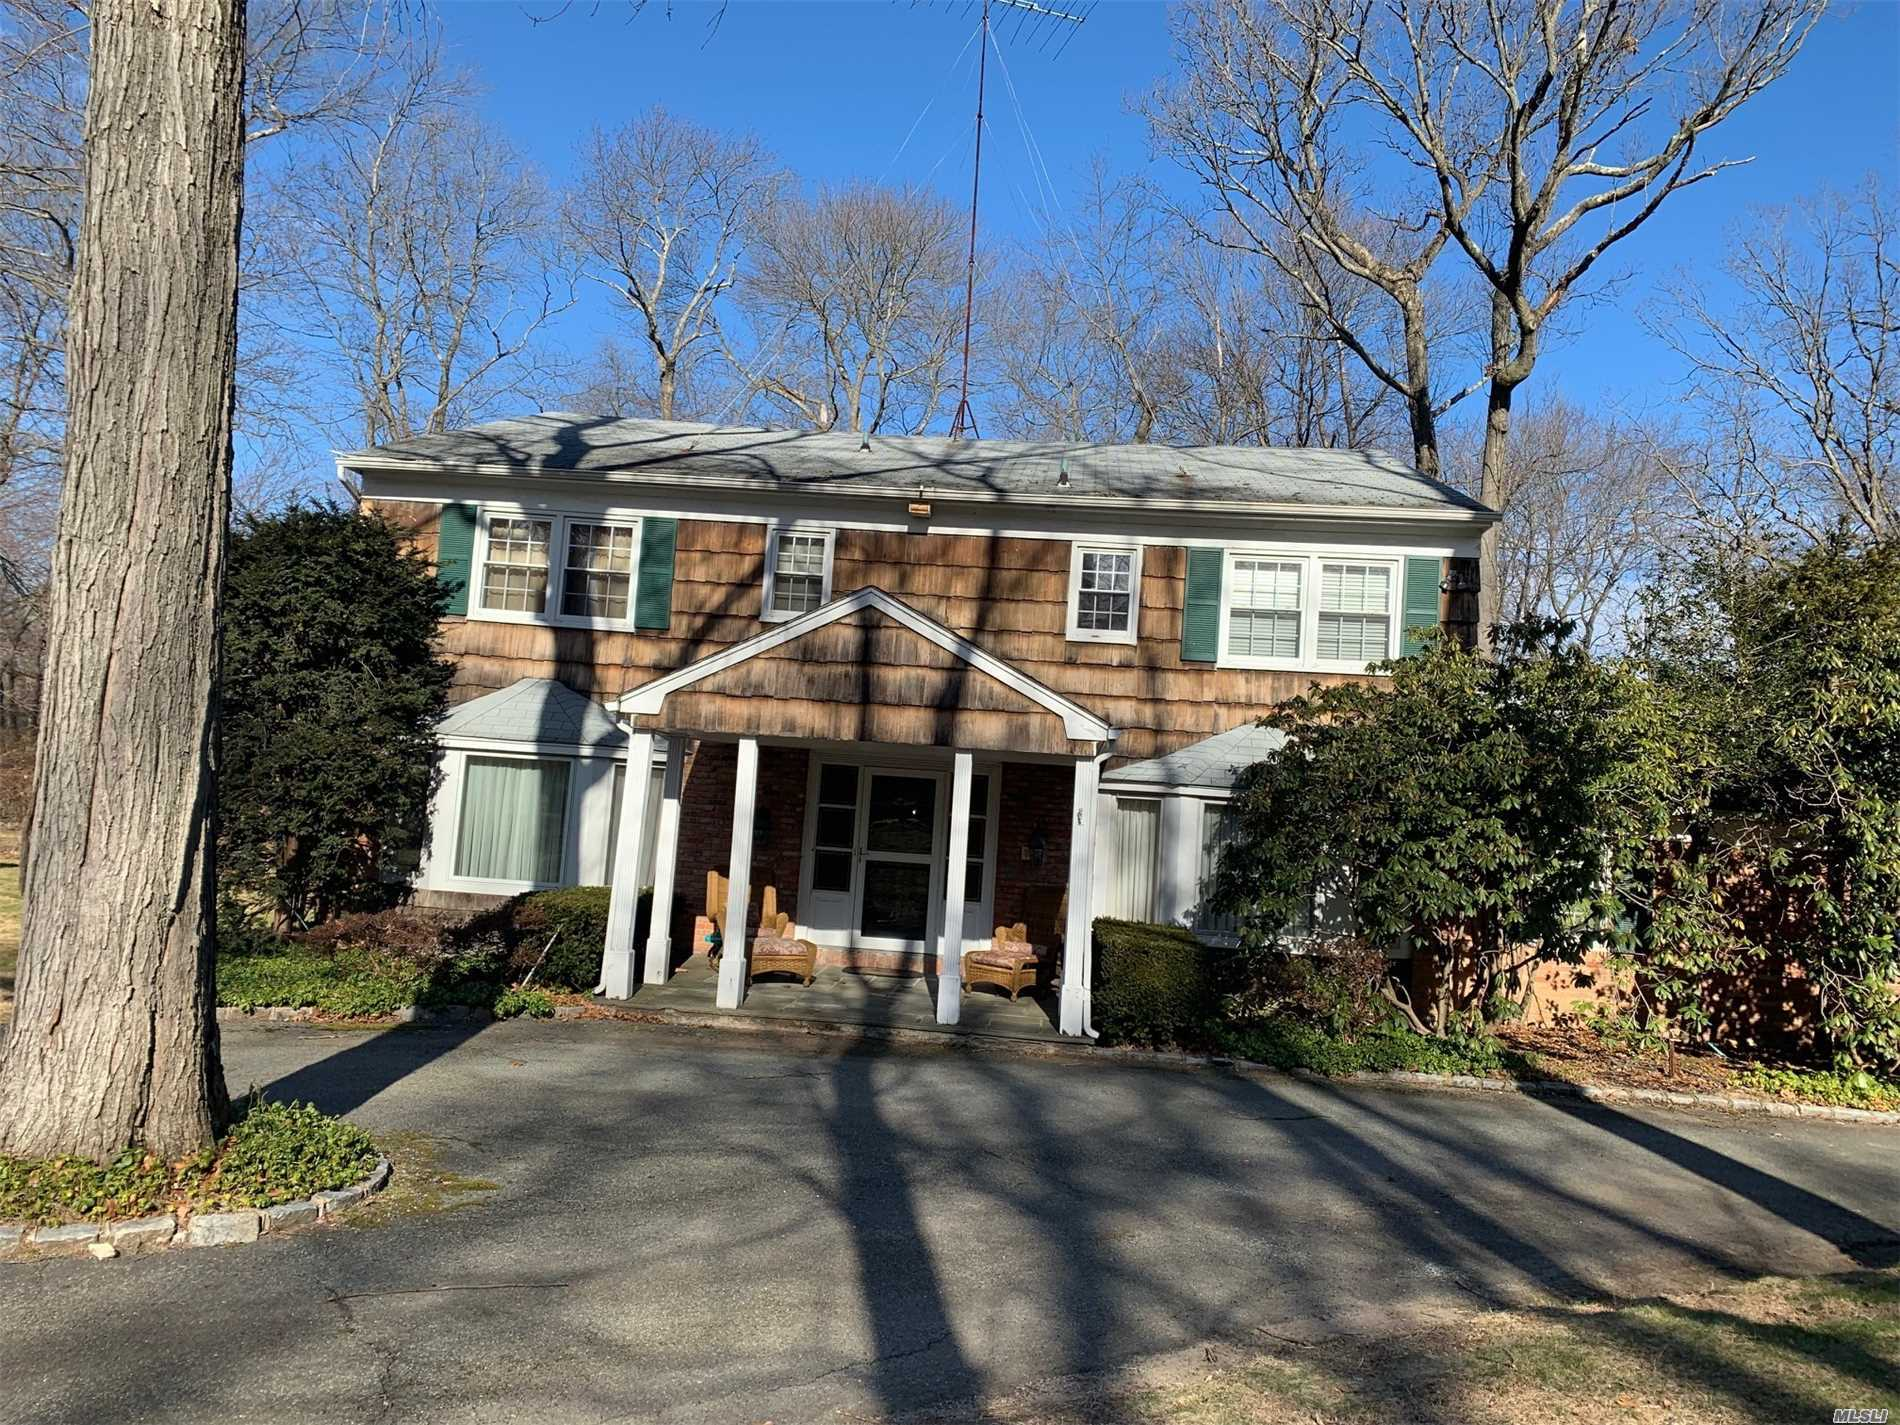 Beautiful Colonial On A Tree Lined Street, This Home Features An Amazing Flow From Room To Room. Foyer With Carrera Marble, Very Spacious Rooms With Plenty Of Storage Space. Price To Sell!! Needs Some Tlc.